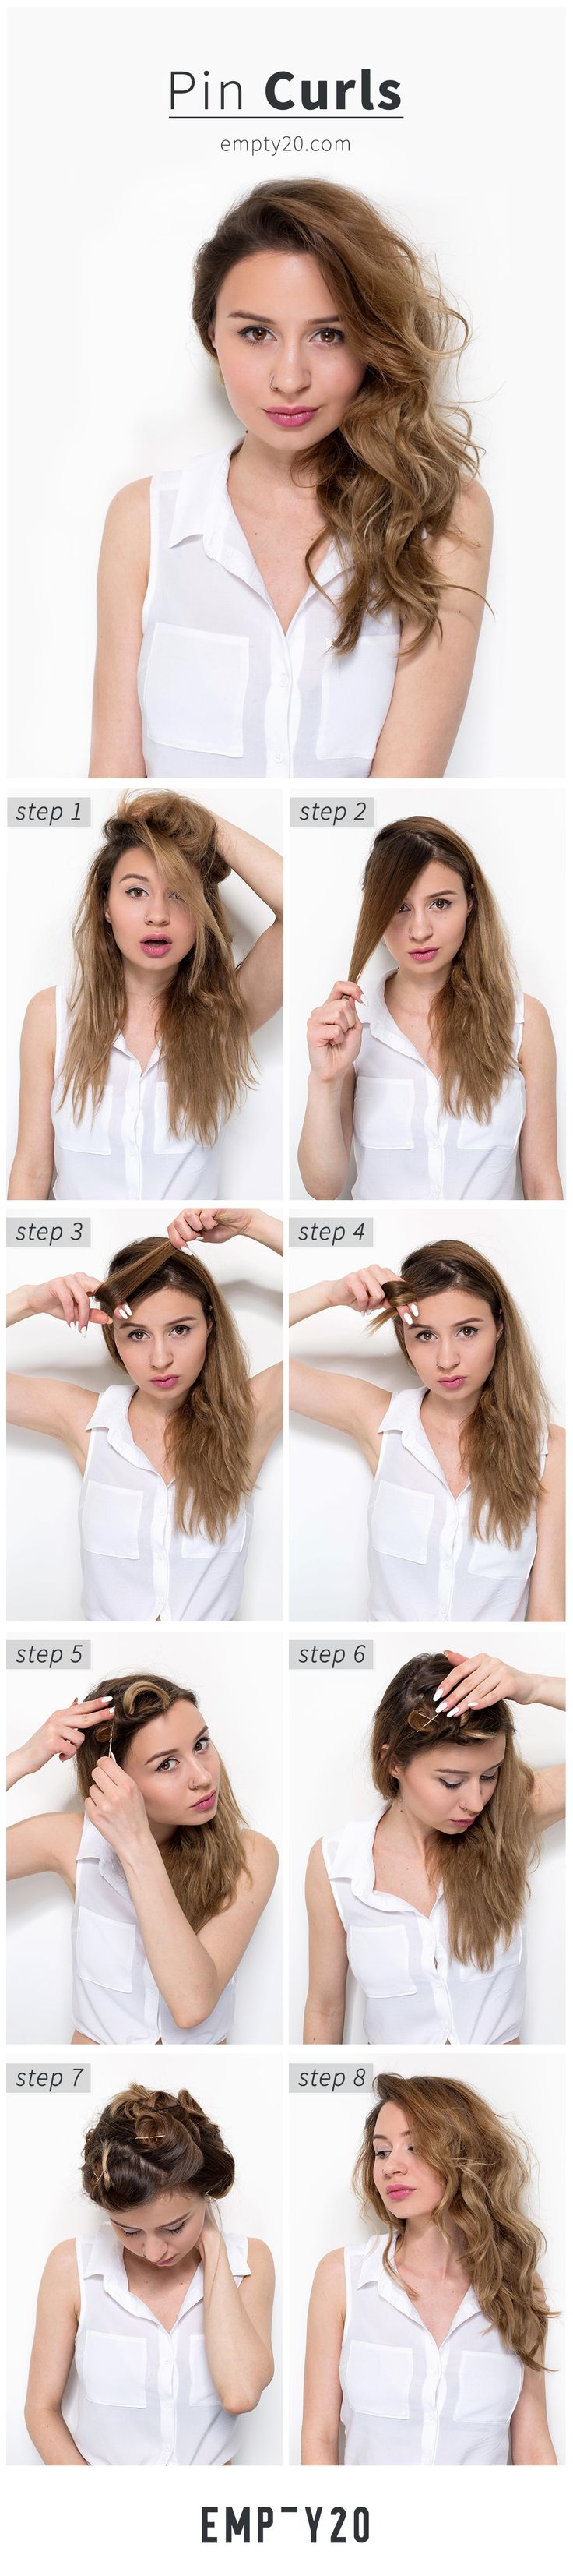 TUTORIAL for Heatless curls using bobby pins! No curling wand or straightener needed! (English version) #heatless #curls #tutorial #bobbypins